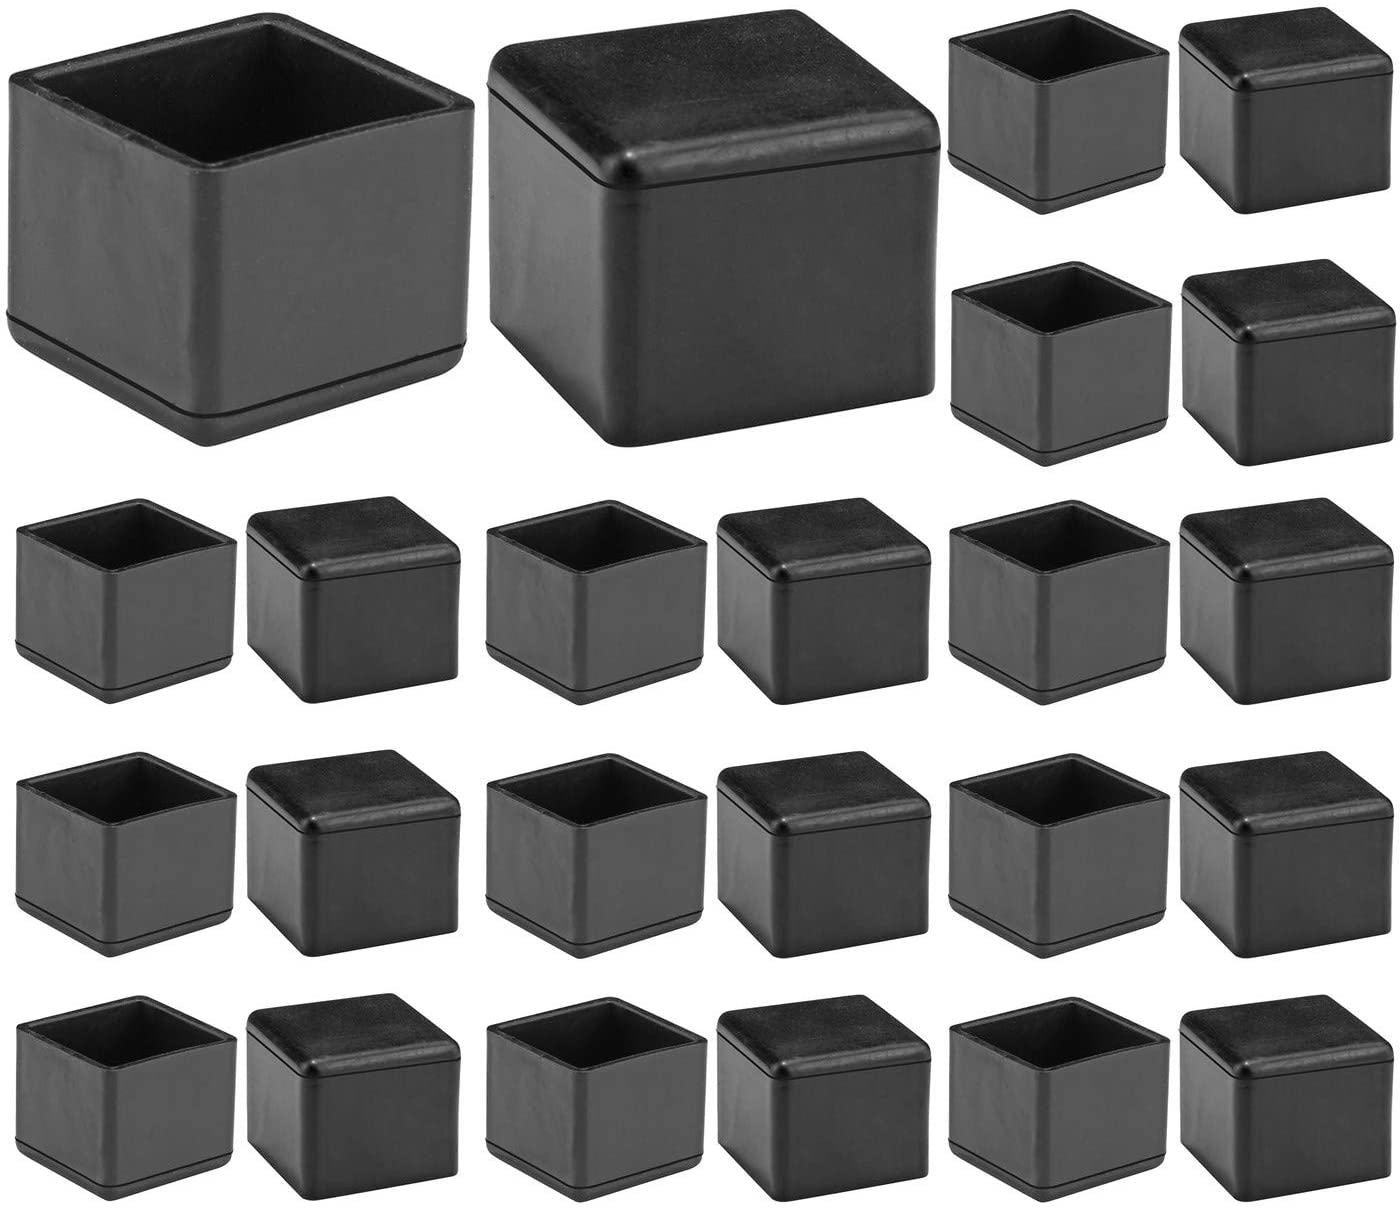 """Ksmiley Chair Leg Floor Protectors, Rubber Square Feet Furniture Pads Table Chair Leg Foot Cover Caps, Non-Slip Floor Protection, Prevent Scratches, 1"""" x 1""""(25mm), 24pcs Black"""